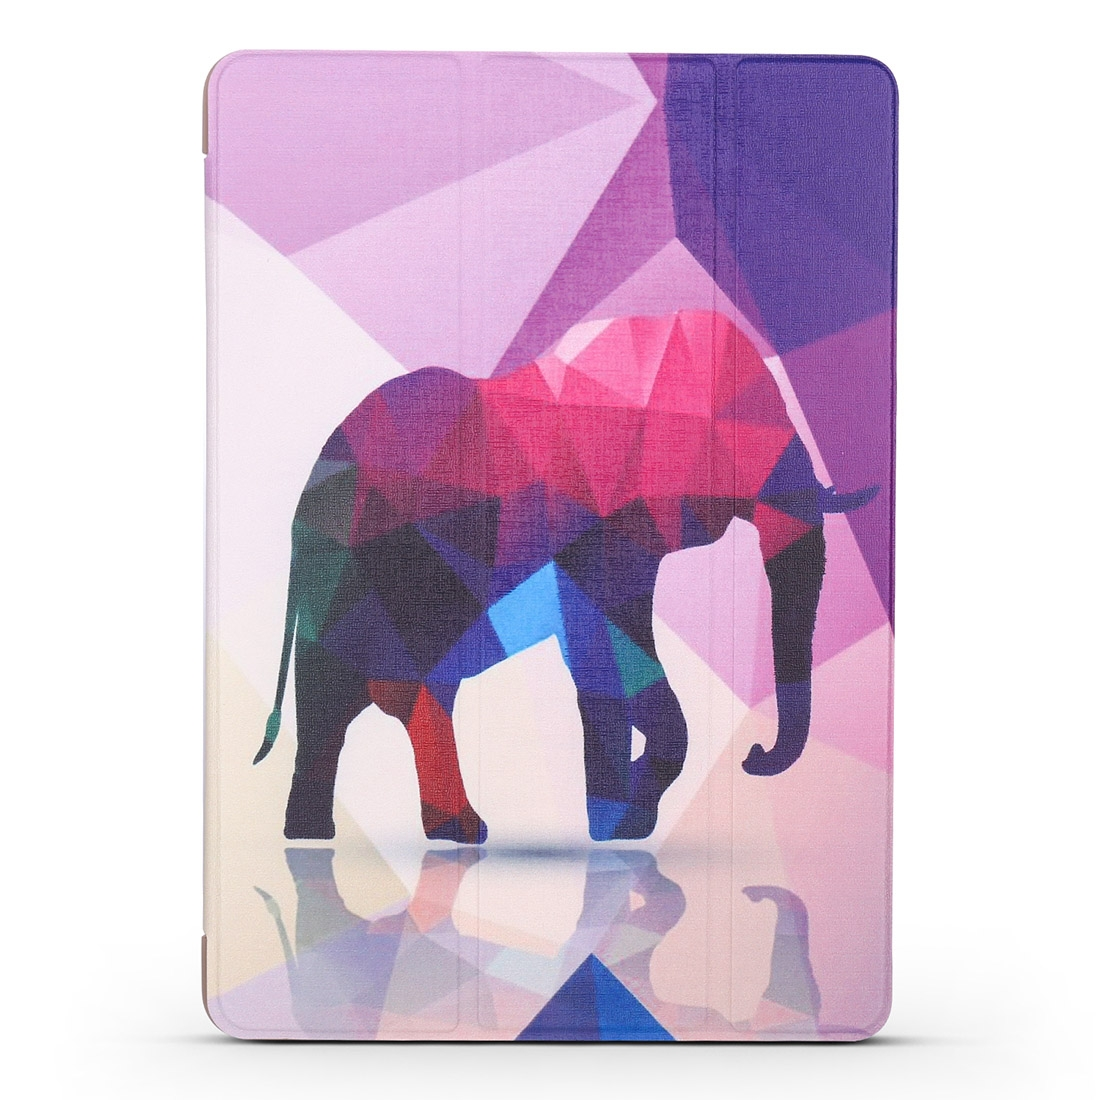 Elephant Leather iPad Air 2 Case (2019)/ Pro 10.5 inch, with Tri-Fold Honeycomb Durable Cover